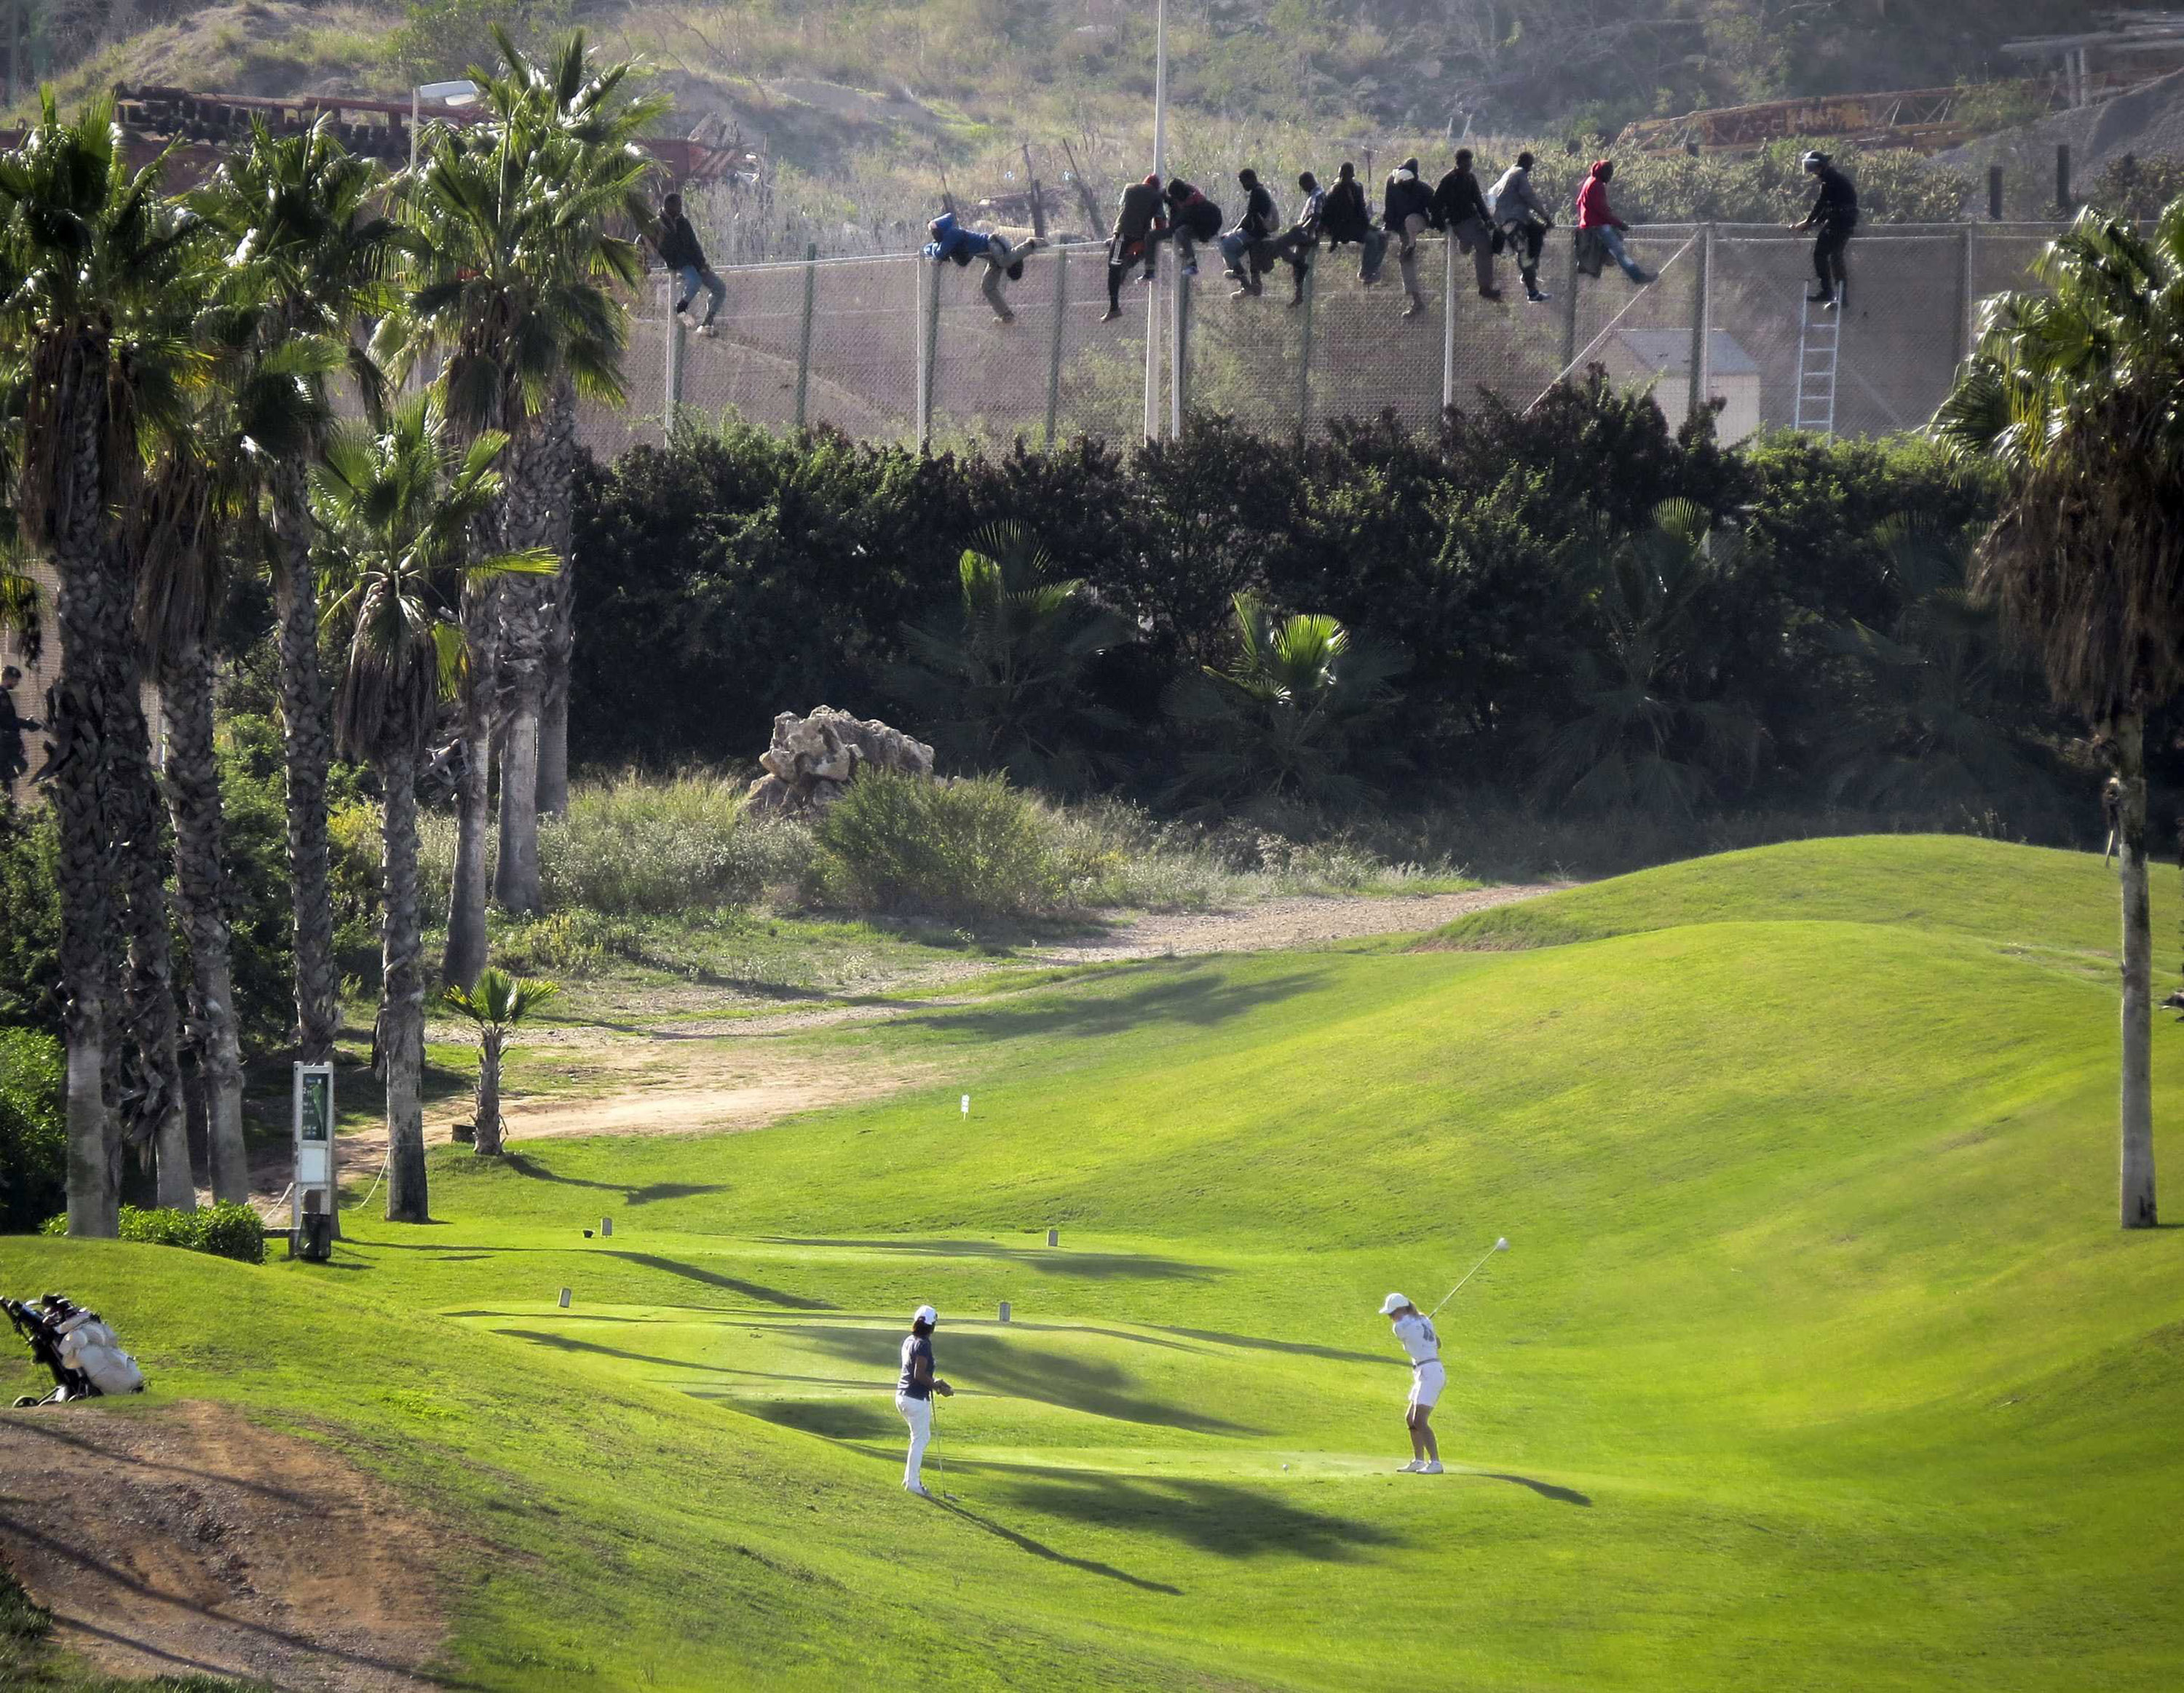 A golfer hits a tee shot as African migrants sit atop a border fence during an attempt to cross into Spanish territories between Morocco and Spain's north African enclave of Melilla on Oct. 22, 2014.